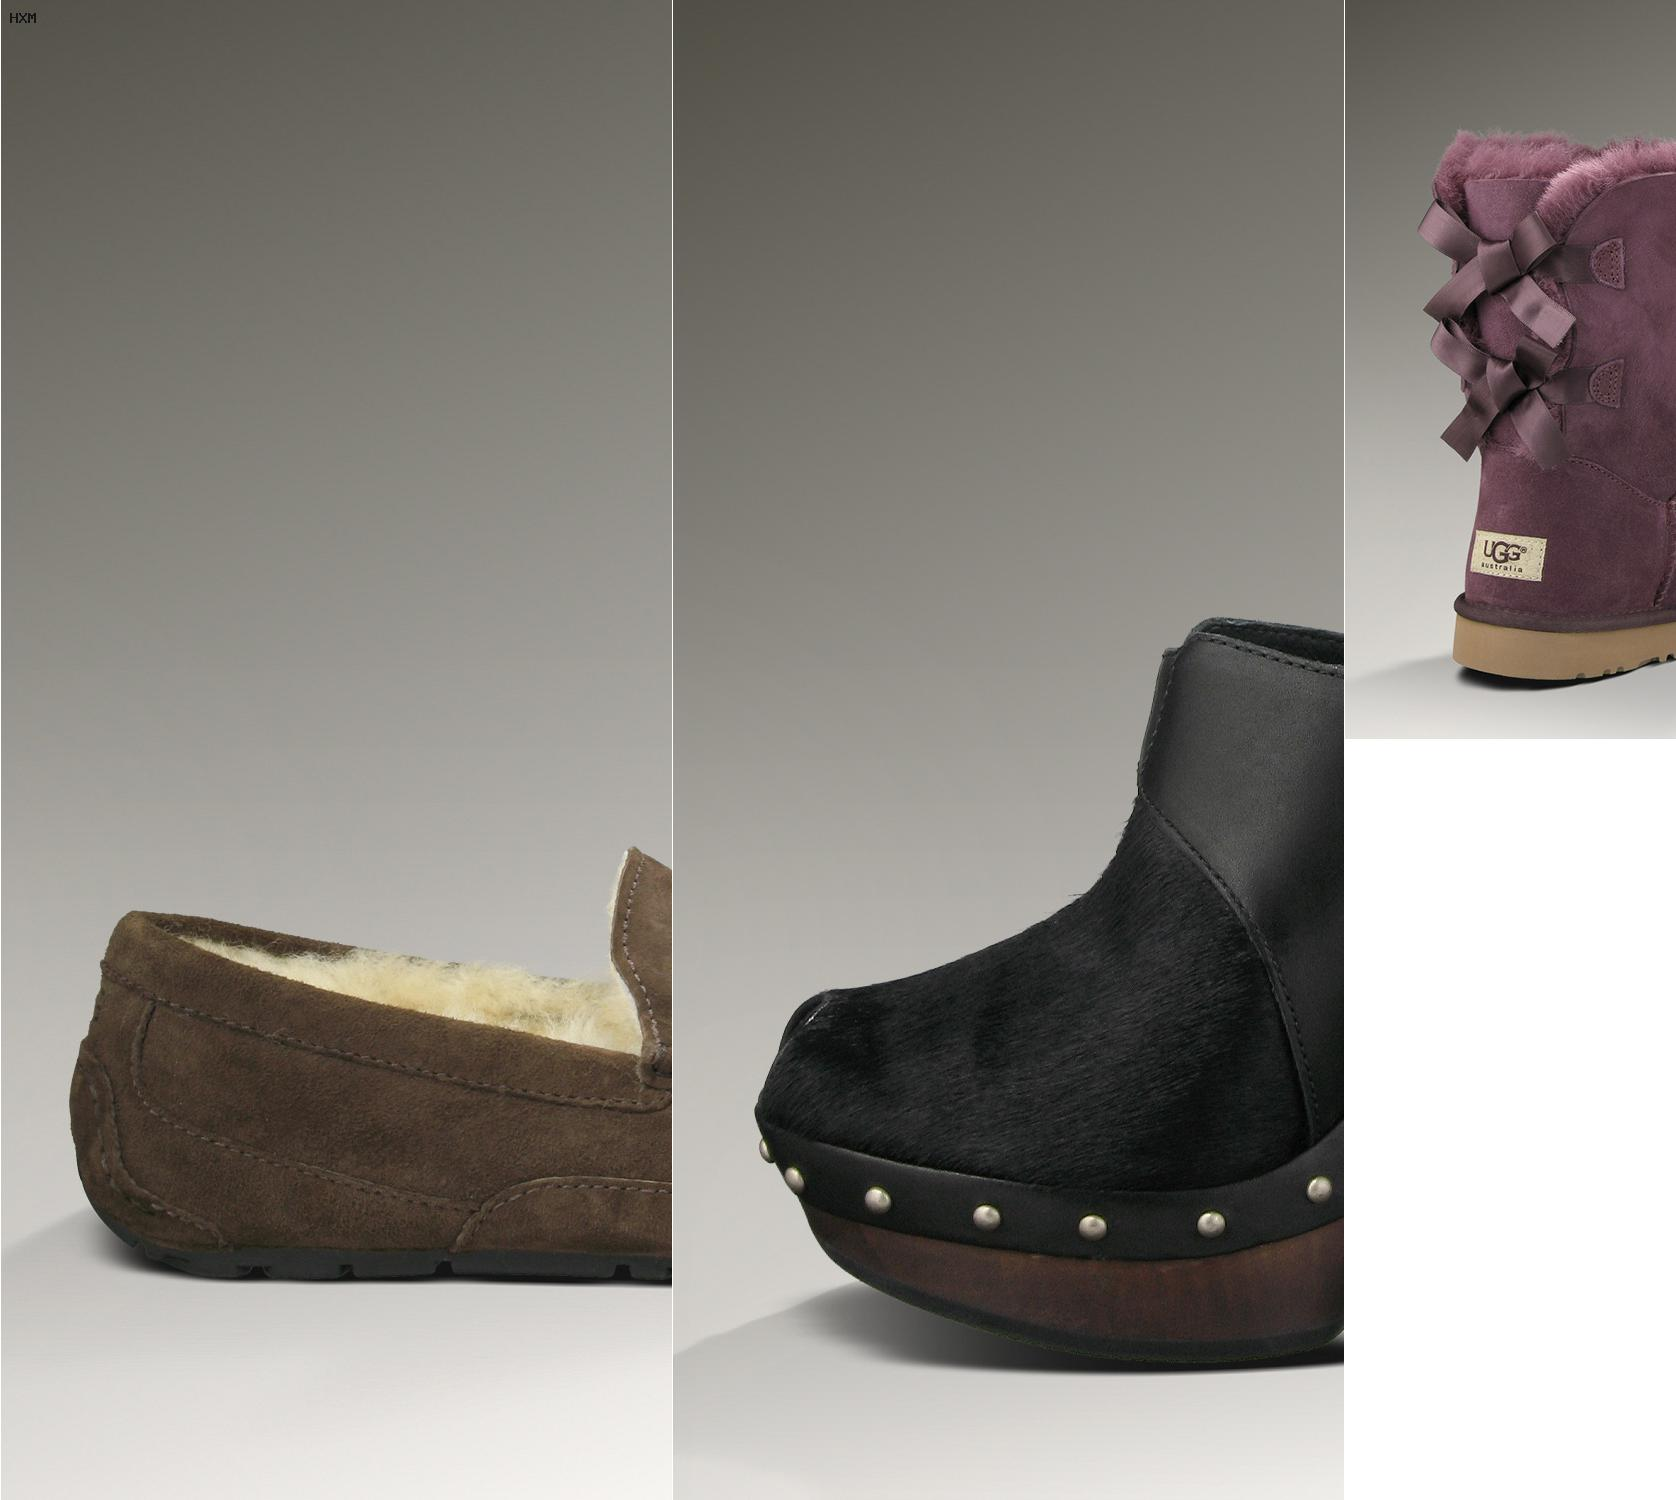 UGG boots | ugg boots uk,ugg sale,ugg boots sale,ugg boots